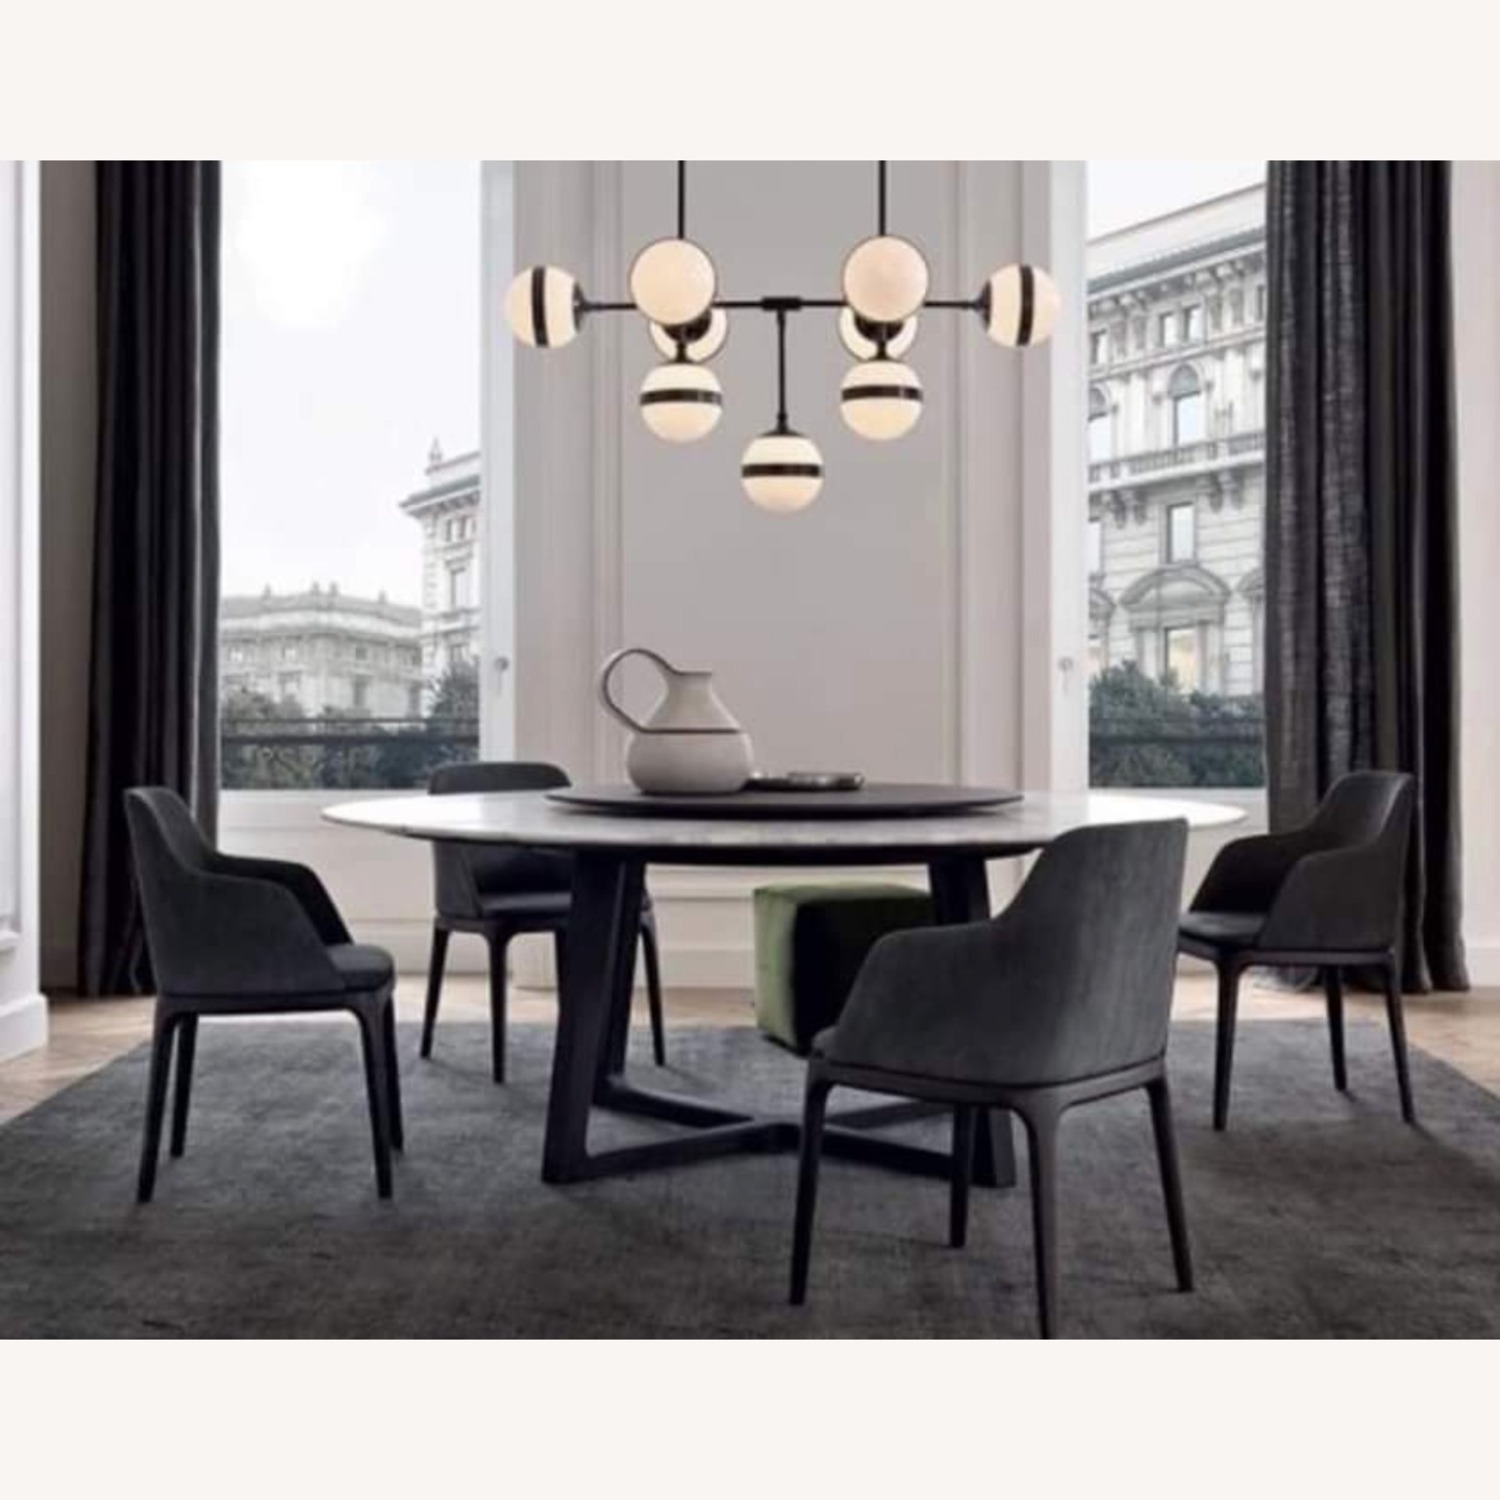 Poliform Sillon Grace Dining Chairs (Set of 4) - image-1